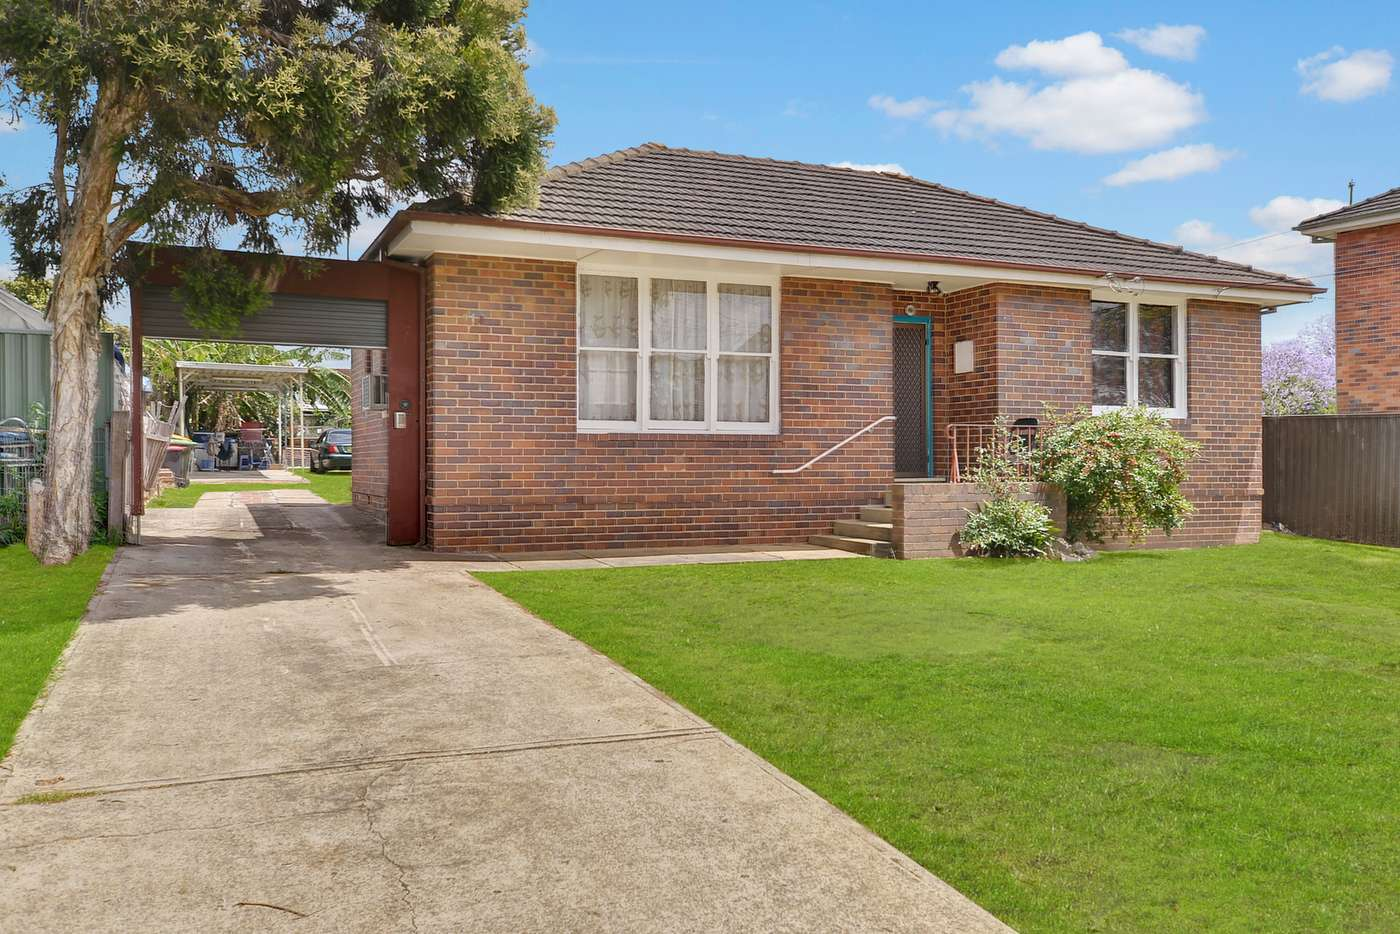 Main view of Homely house listing, 114 Carawatha Street, Villawood NSW 2163